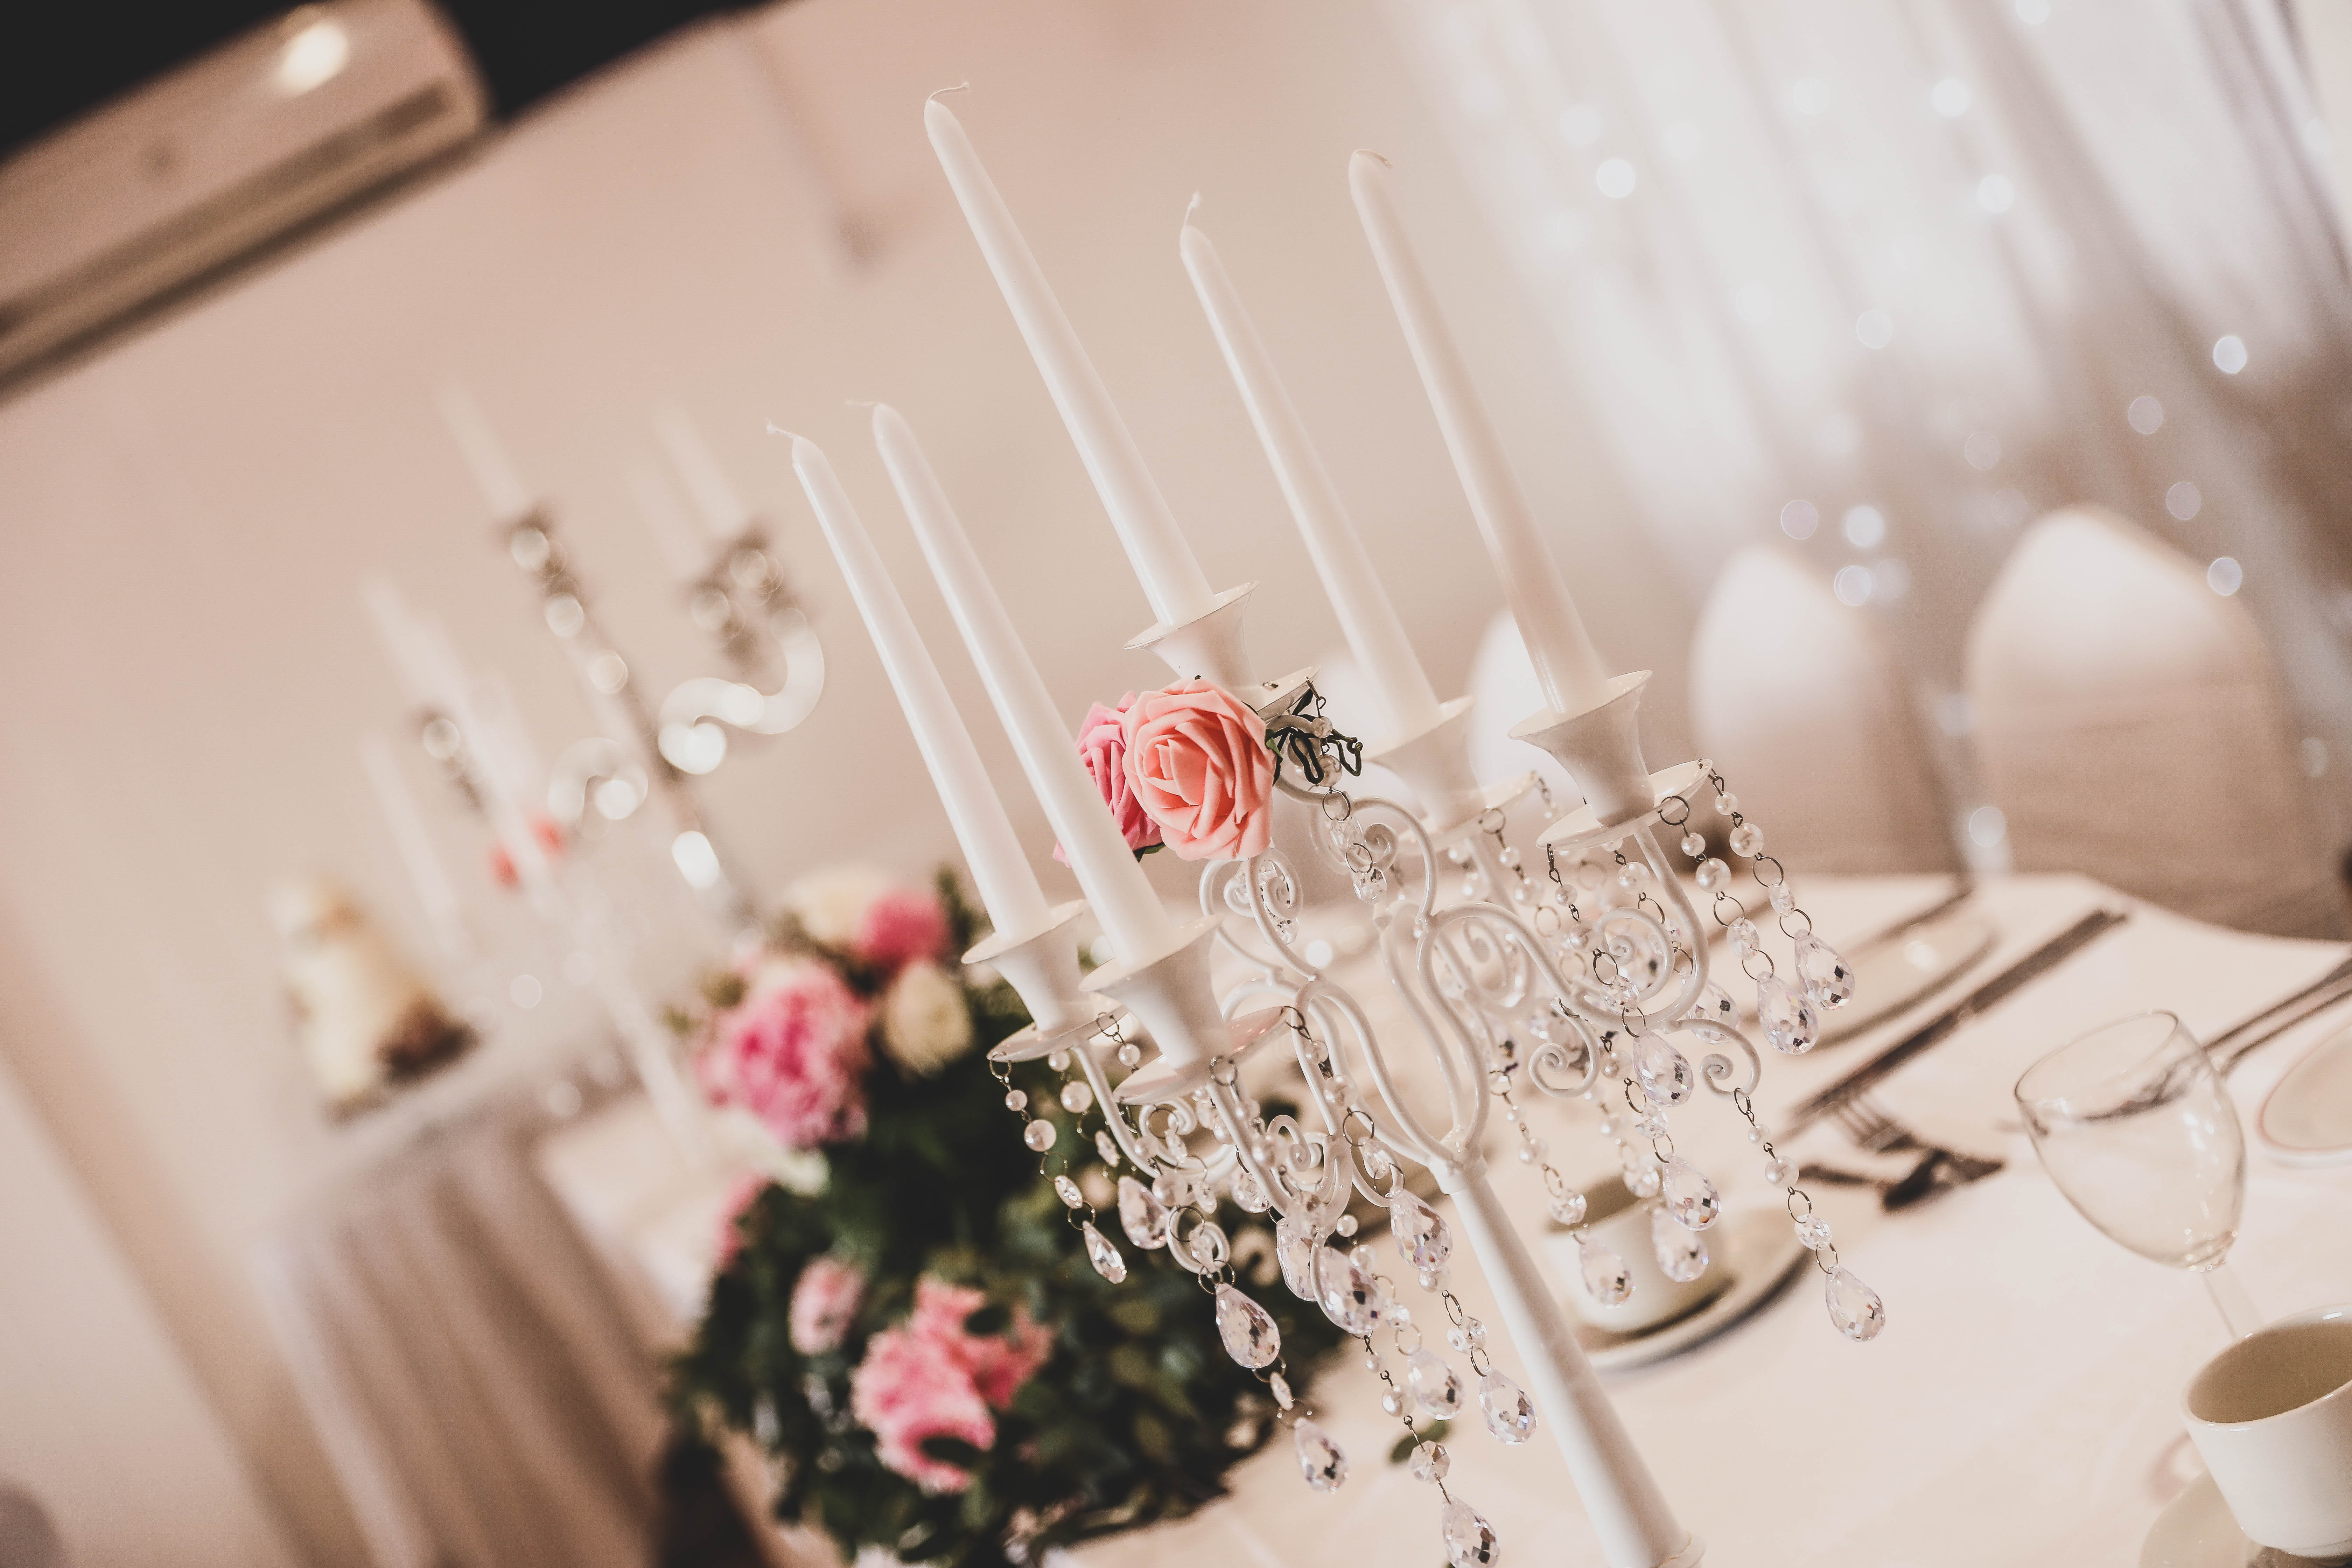 White 5 Arm Candelabra with Crystals